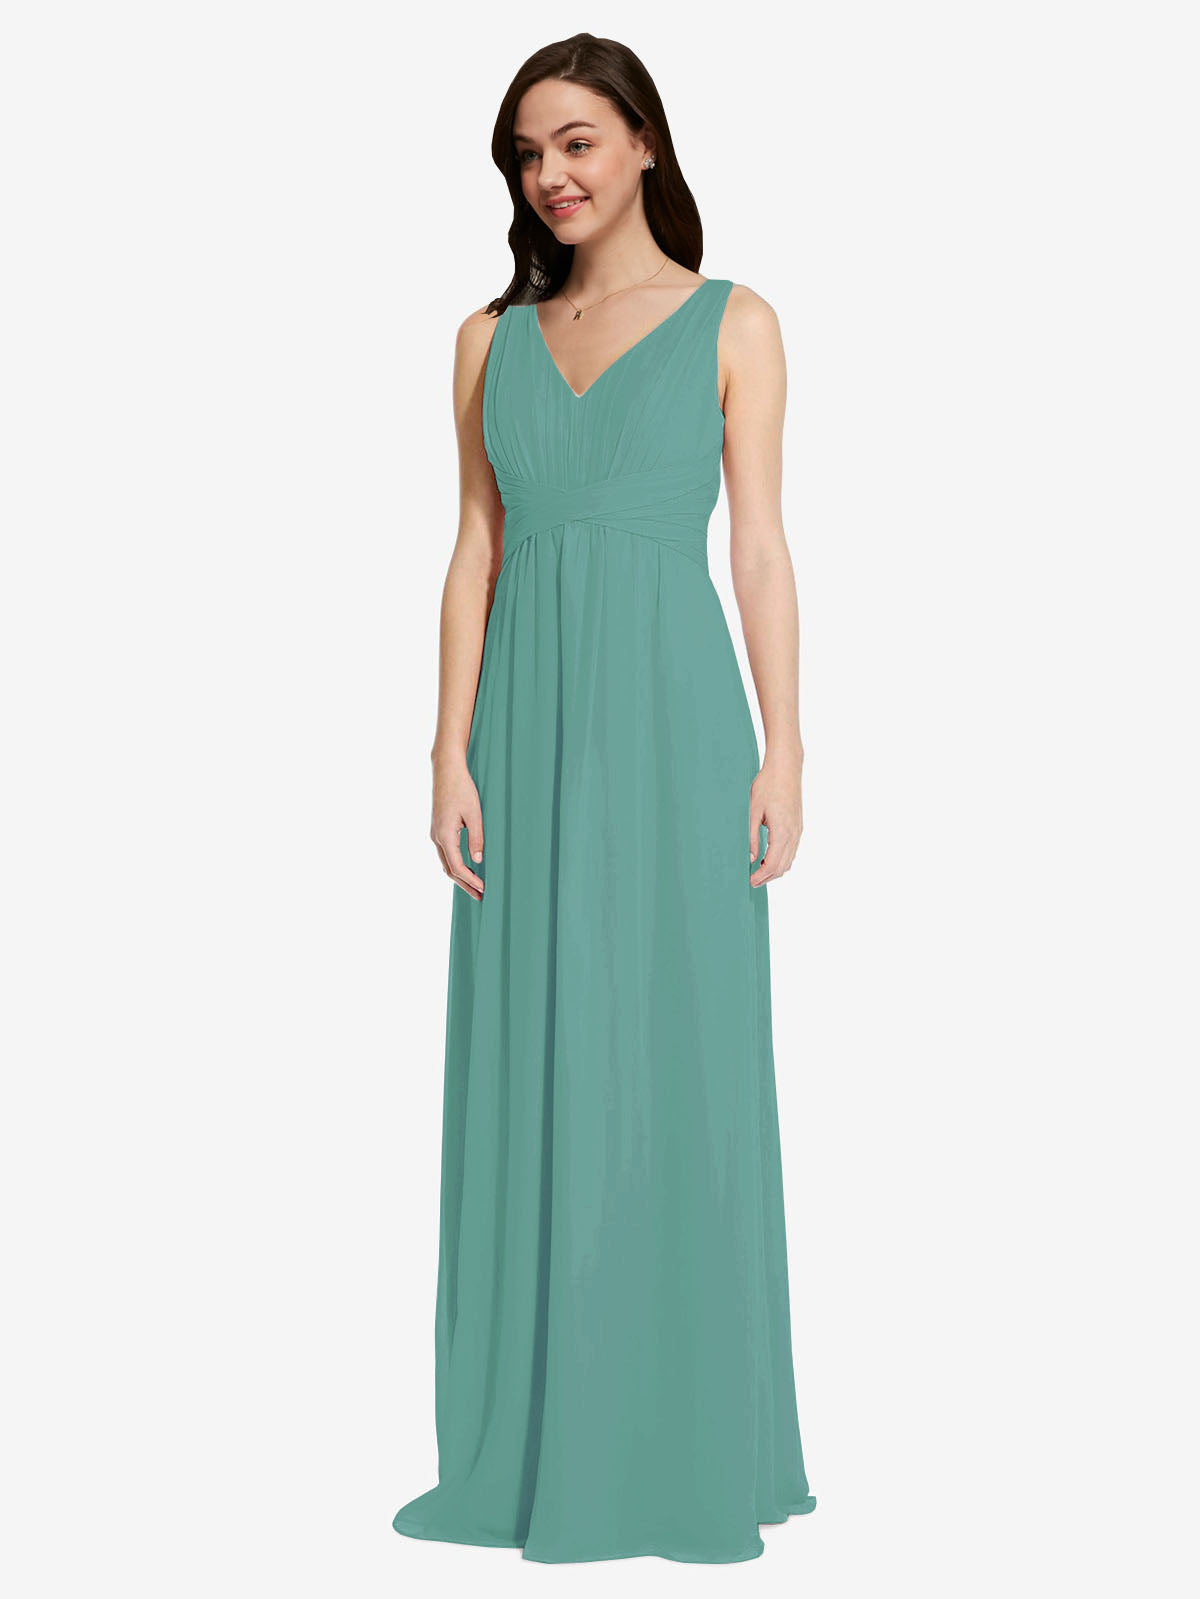 Long A-Line V-Neck Sleeveless Icelandic Silver Chiffon Bridesmaid Dress Auckland